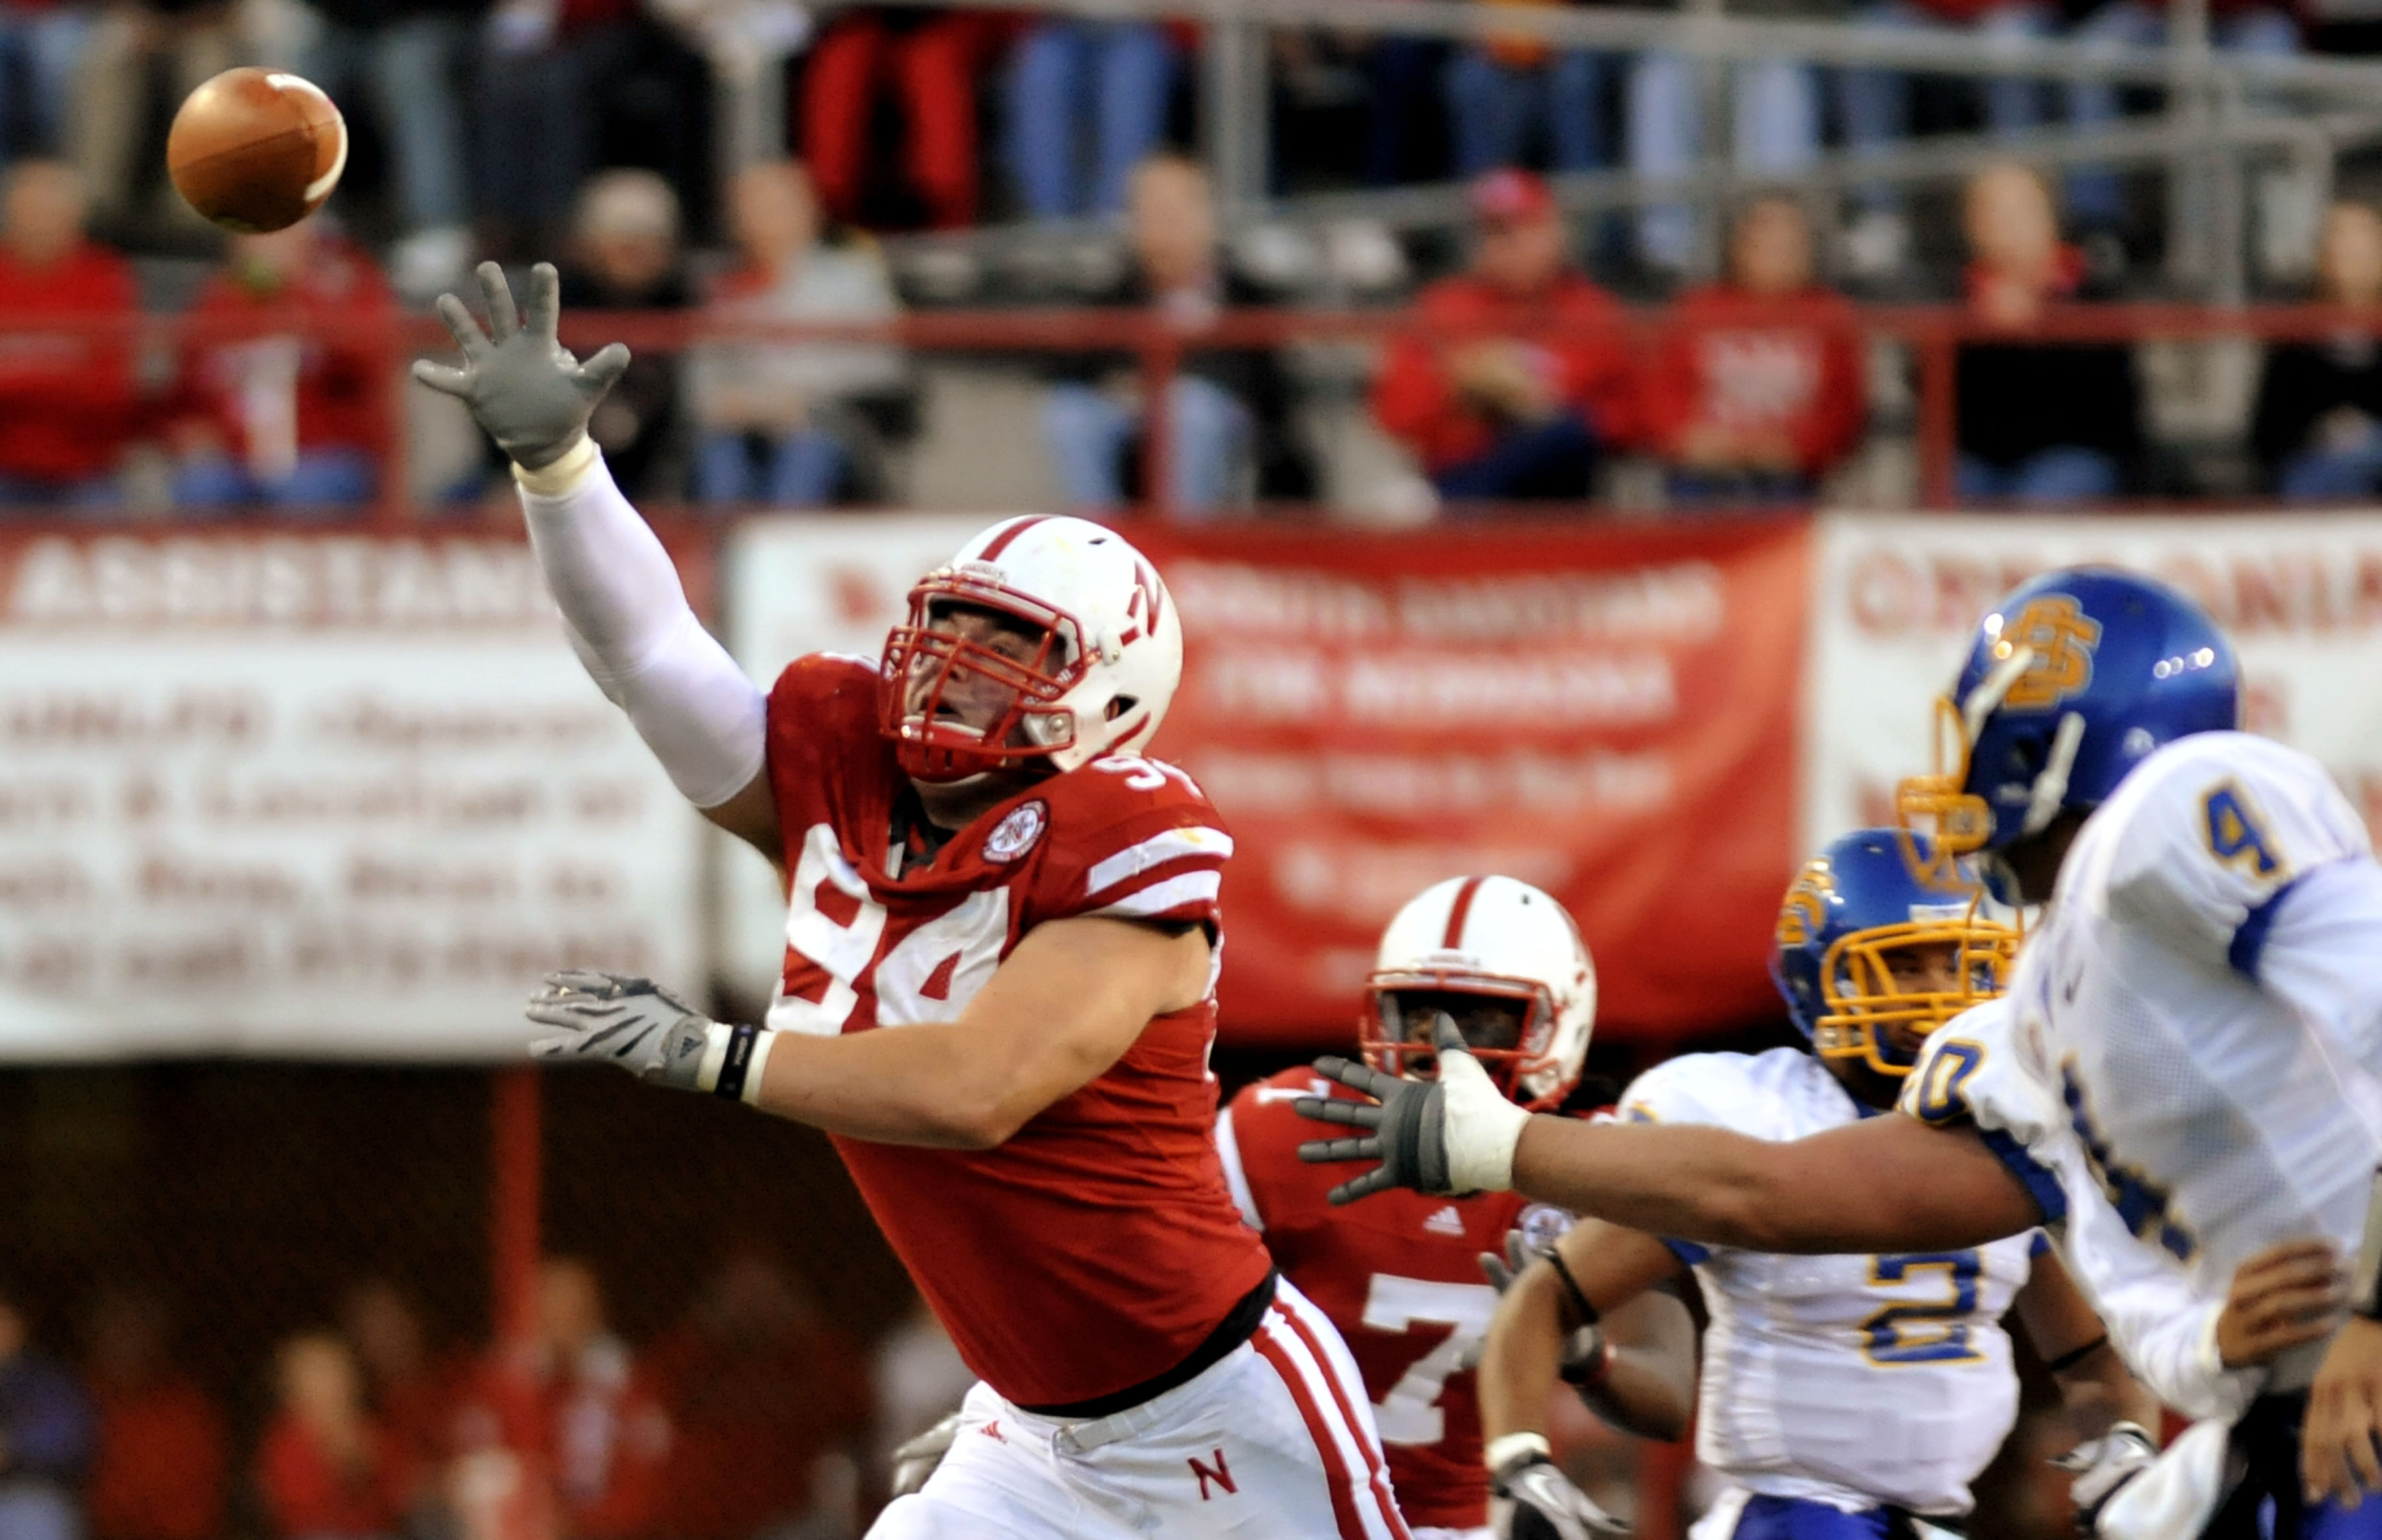 LINCOLN, NE - SEPTEMBER 25: Defensive tackle Jared Crick #94 of the Nebraska Cornhuskers tries to bat down a pass from  quarterback Thomas O'Brien #4 of the South Dakota State Jackrabbits during first half action of their game at Memorial Stadium on Septe